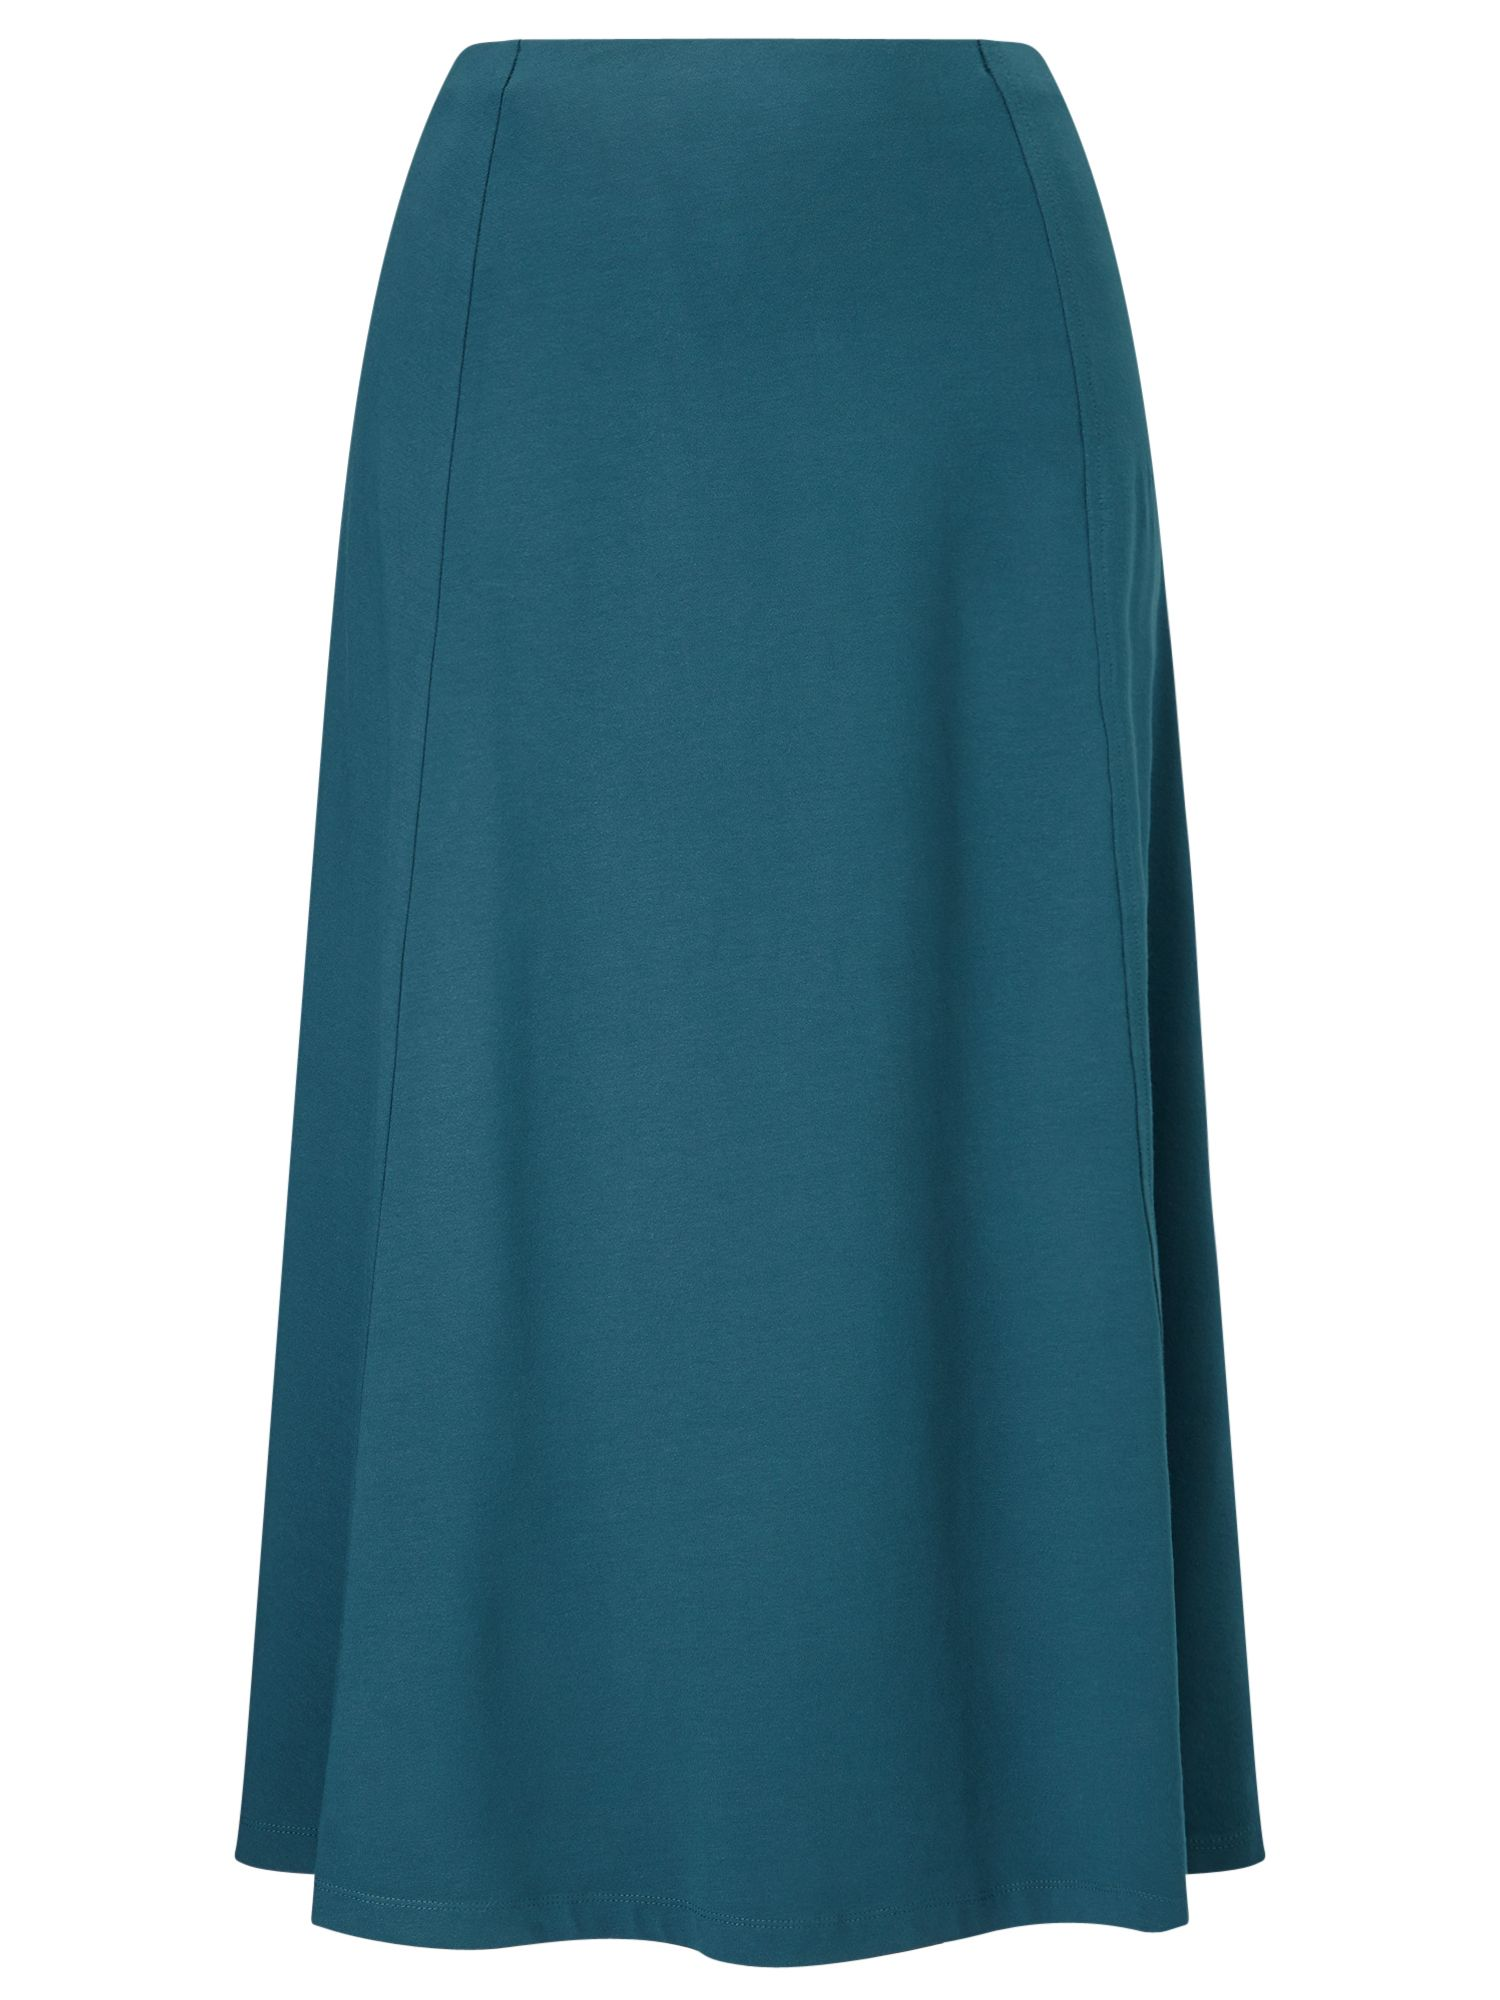 Eastex Midnight Teal Jersey Skirt, Turquoise